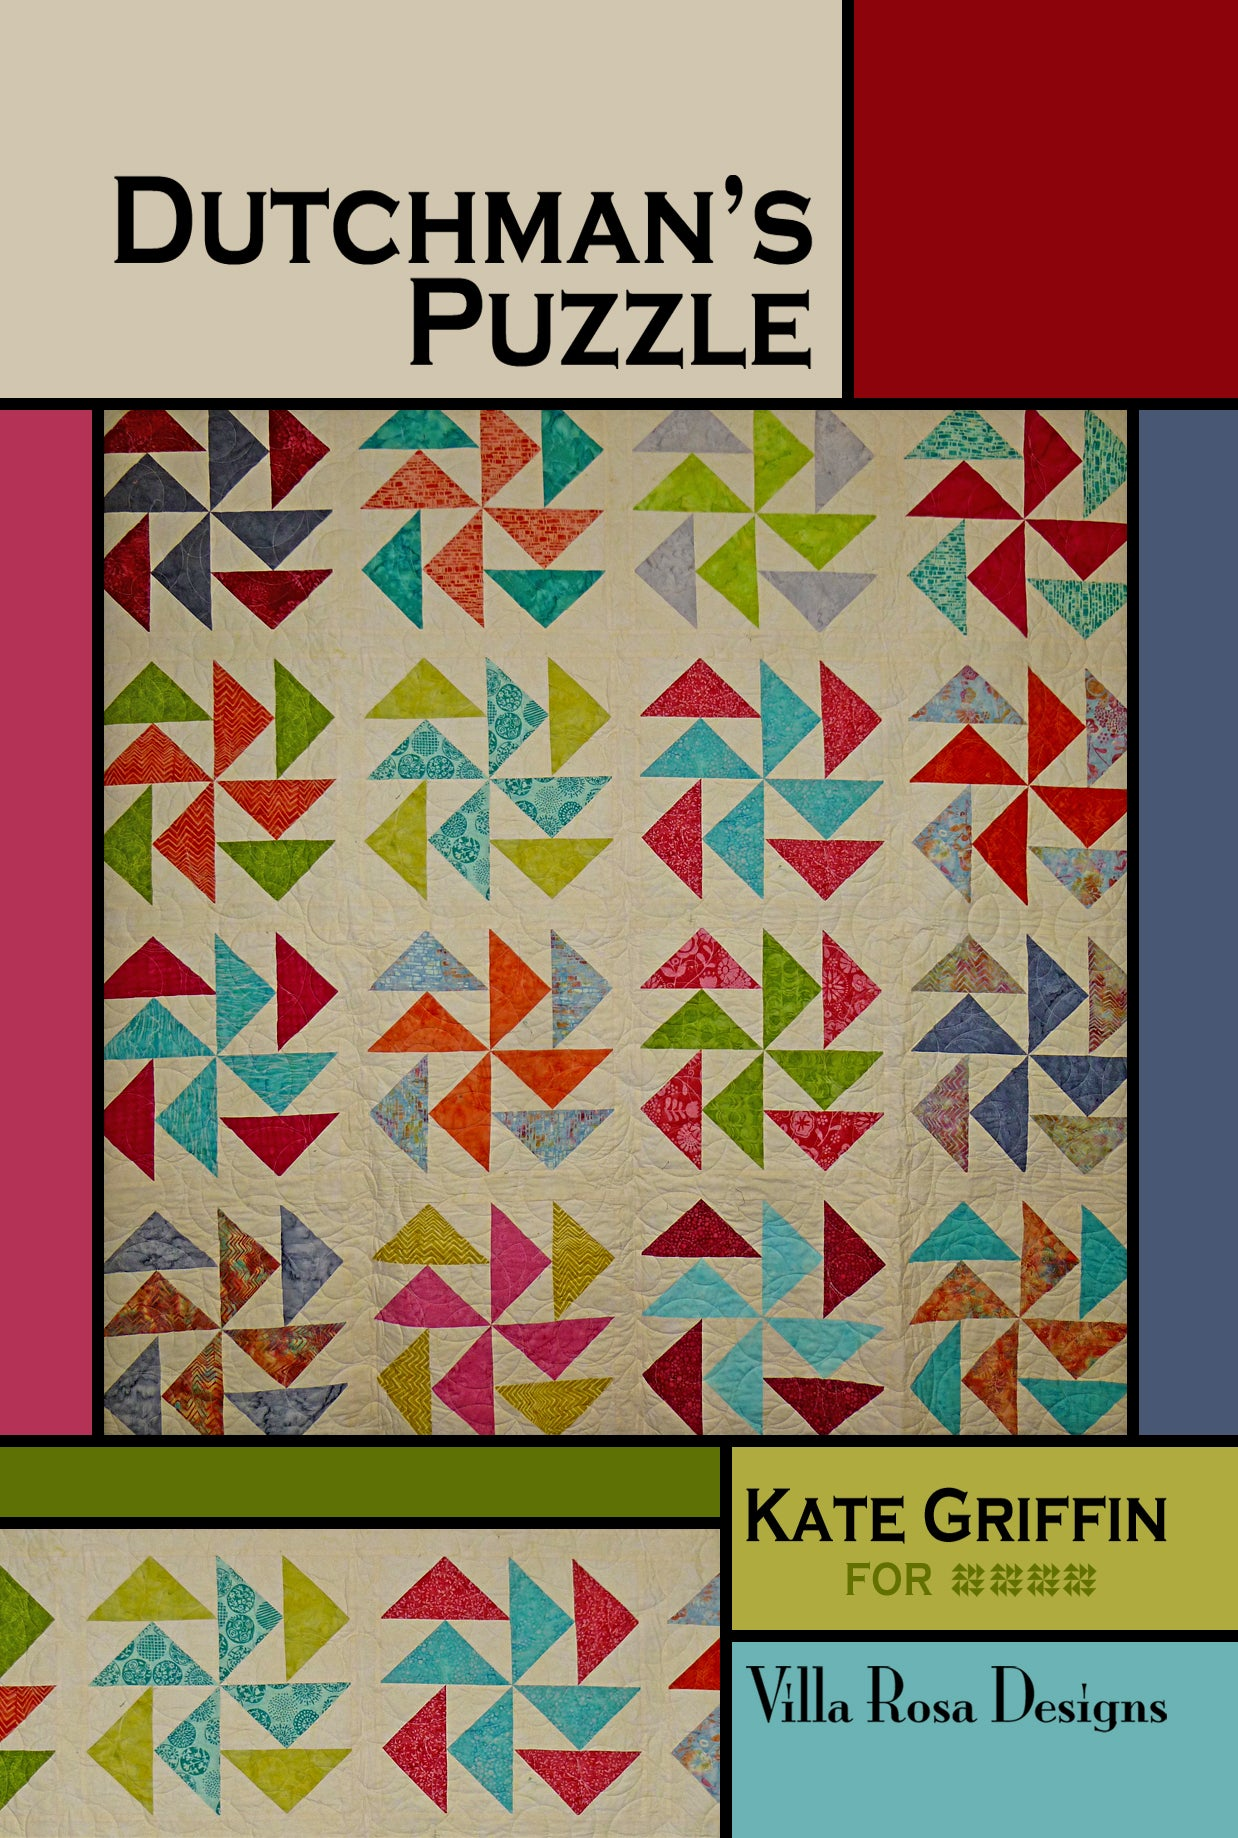 DIGITAL - DUTCHMAN'S PUZZLE